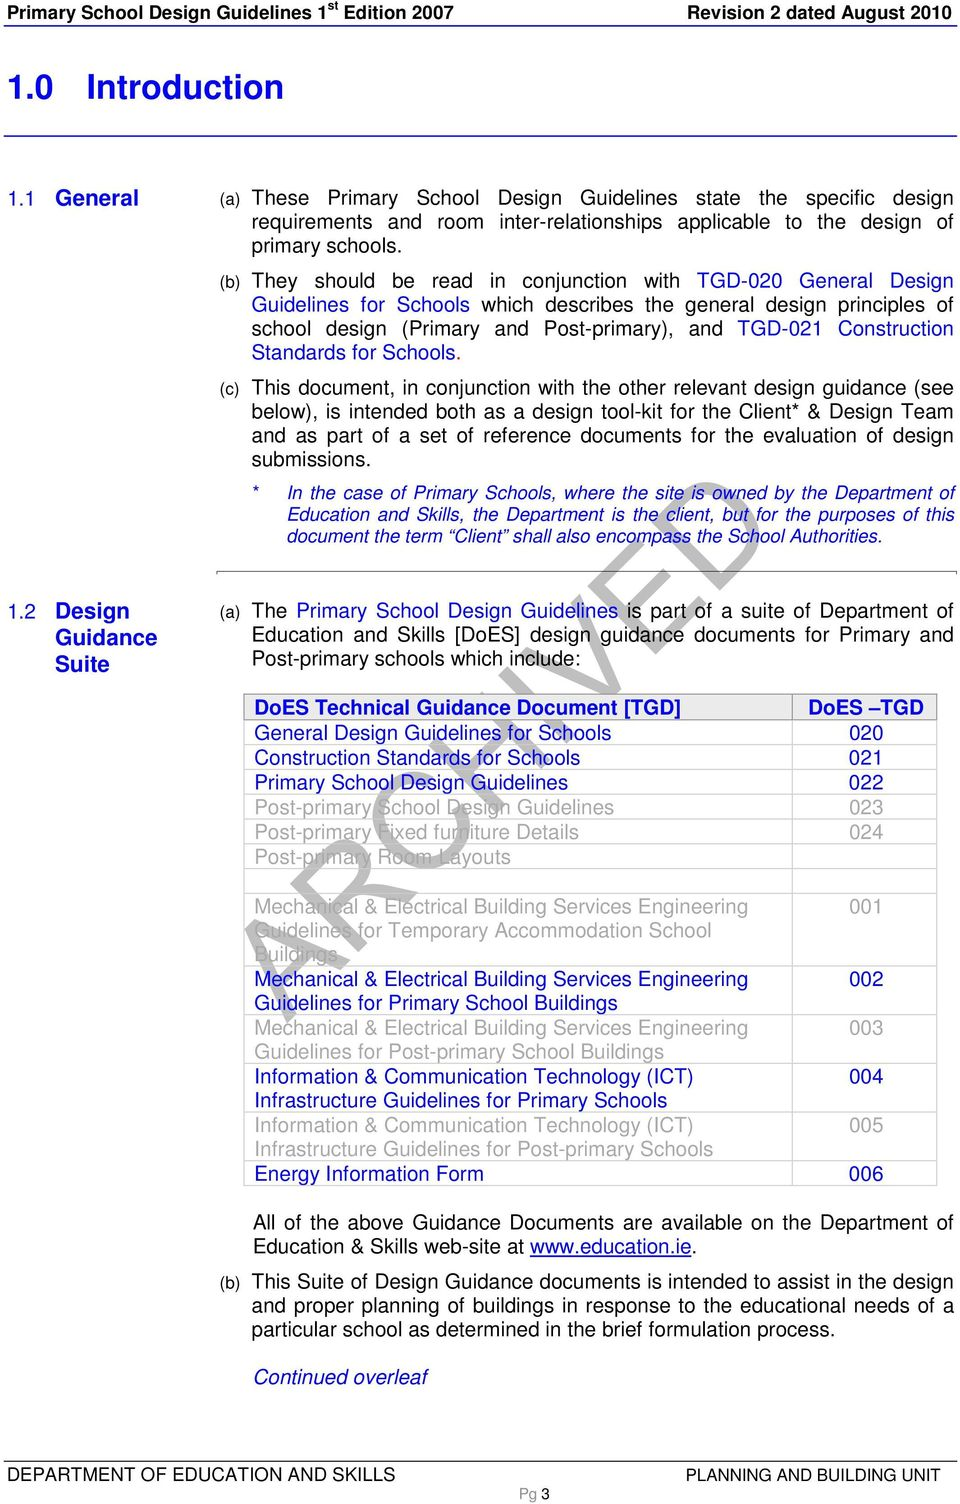 2 Design Guidance Suite (b) They should be read in conjunction with TGD-020 General Design Guidelines for Schools which describes the general design principles of school design (Primary and